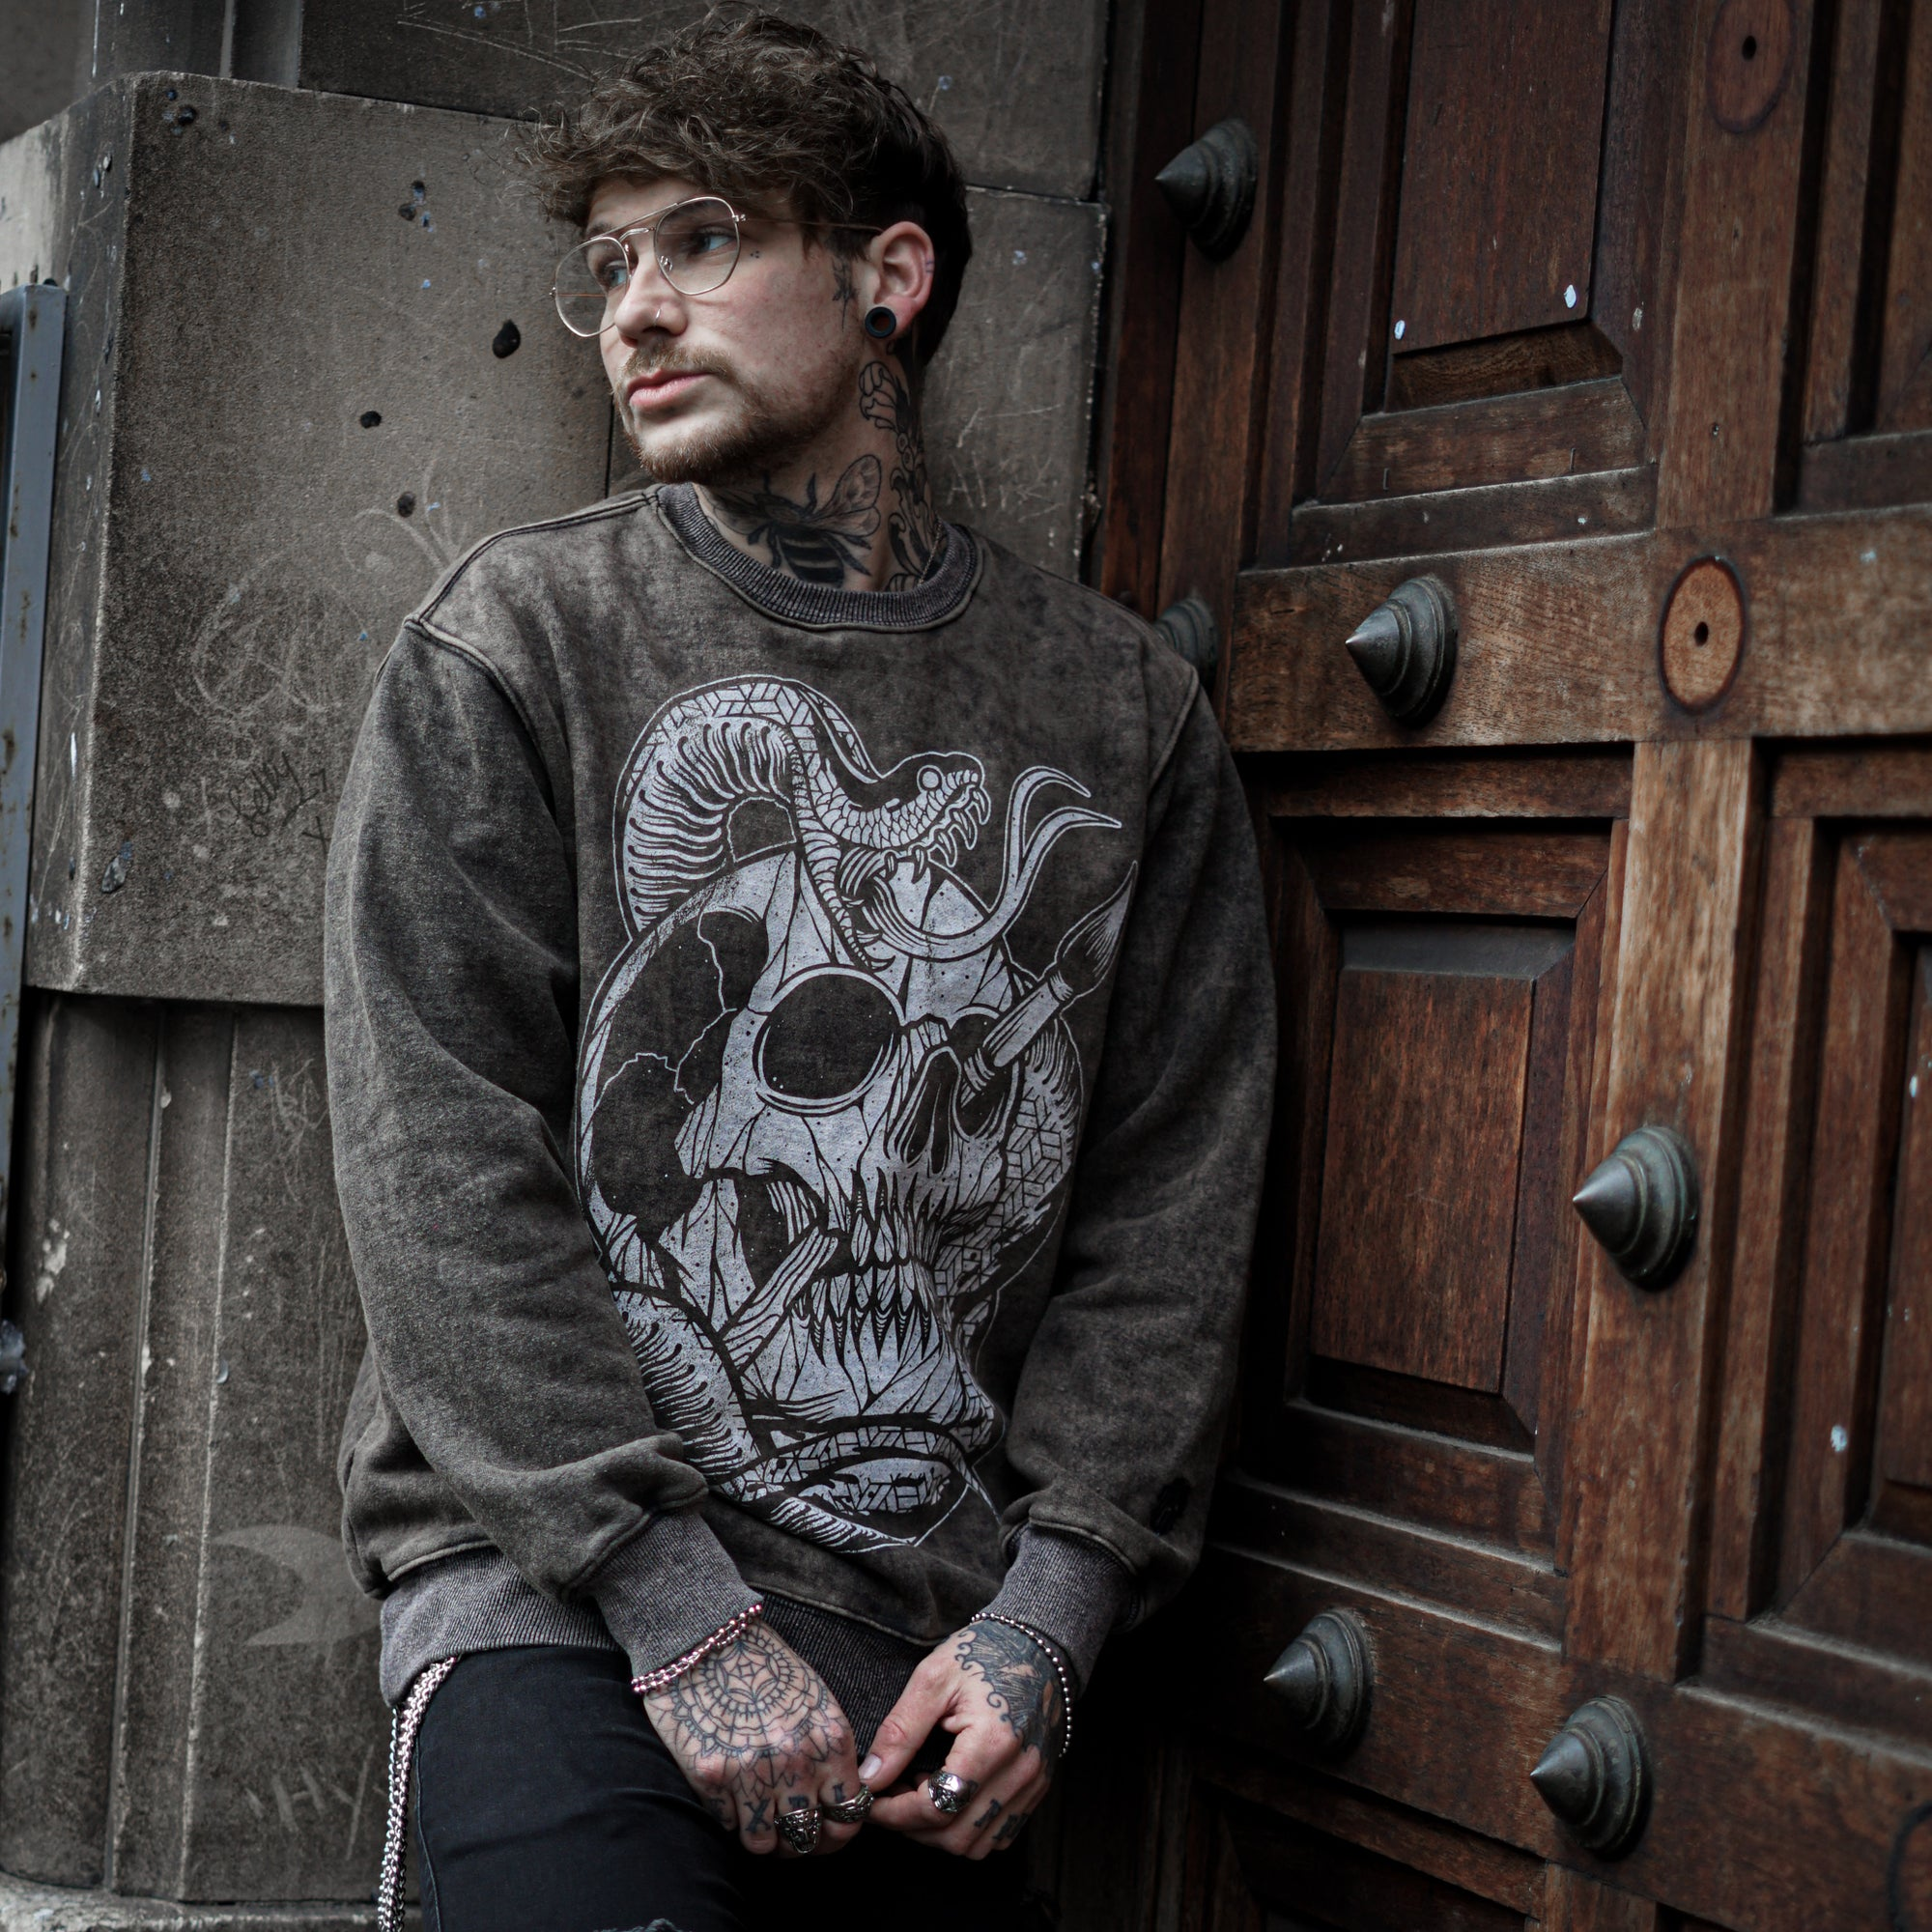 The Duchess of Malfi - Acid Wash Sweater